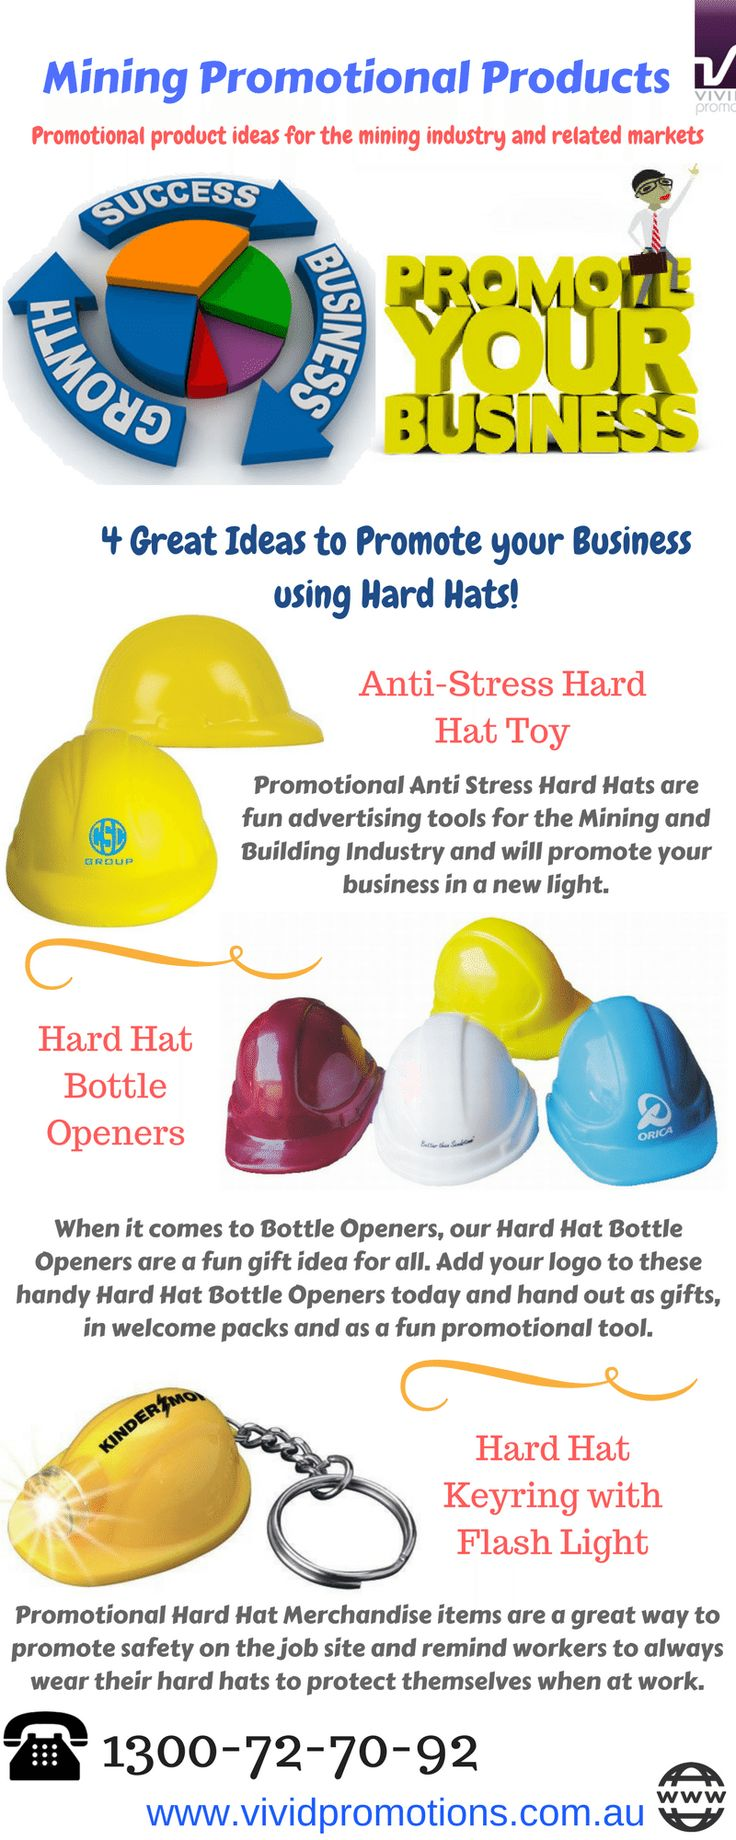 Searching for a great ideas to promote your business? Promote your brand with the custom printed Mining Promotional Products available at Vivid Promotions Australia. When it comes to the mining industry, Vivid Promotions has some fun and novelty promotional products to get your message out.